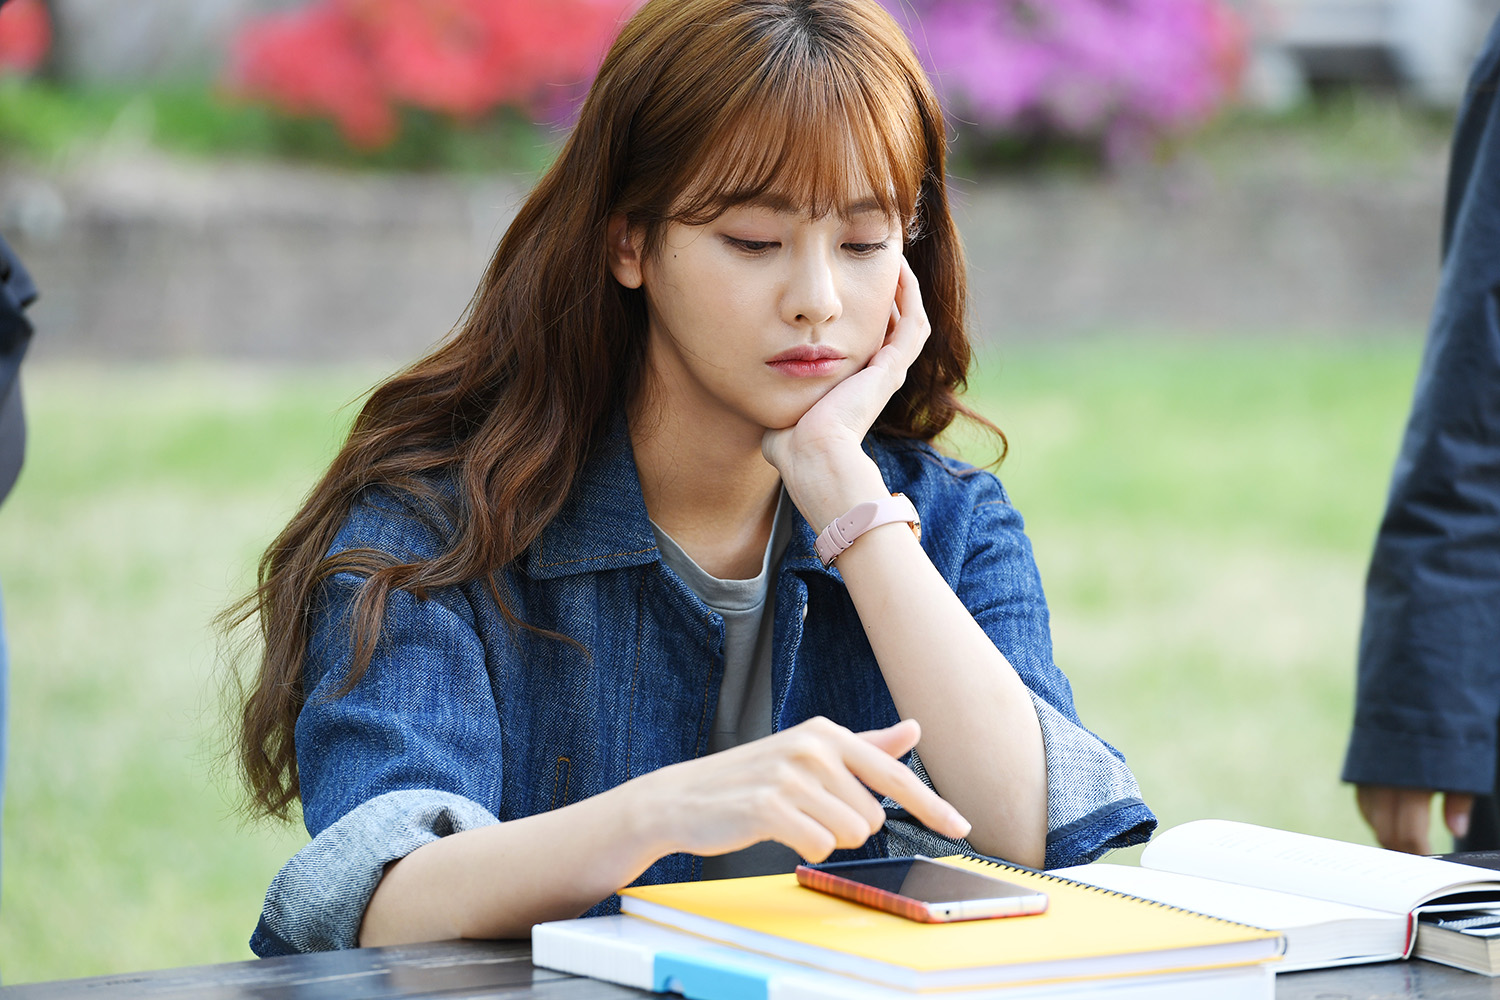 """Second teaser trailer for movie """"Cheese in the Trap"""" 